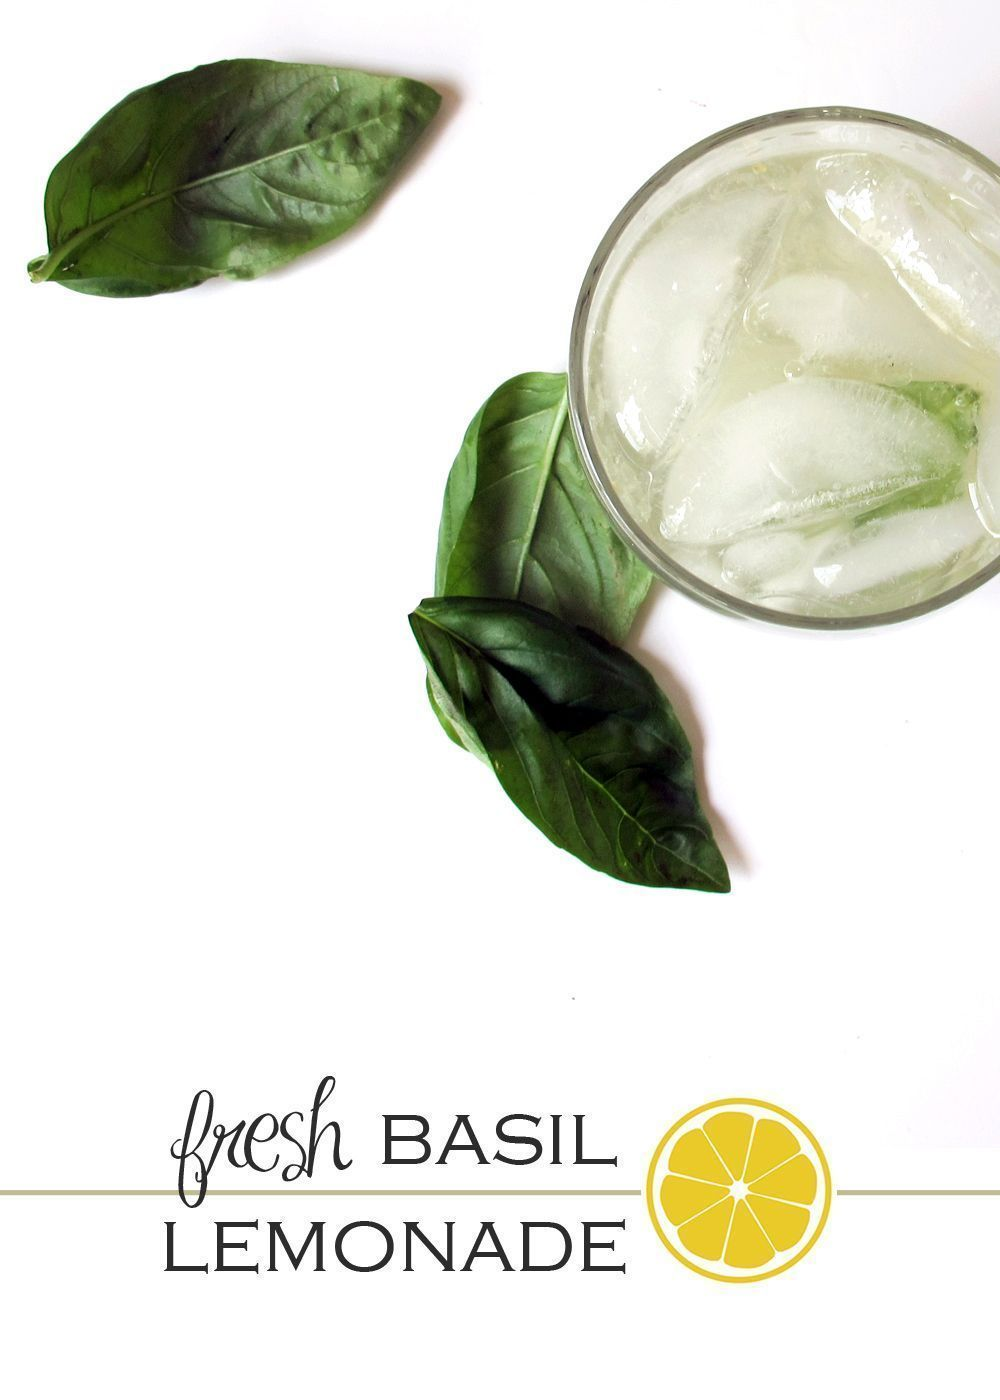 sparkling basil lemonade recipe #basillemonade Refreshing, spicy, with a touch of sweet sparkling basil lemonade (from scratch!) #basillemonade sparkling basil lemonade recipe #basillemonade Refreshing, spicy, with a touch of sweet sparkling basil lemonade (from scratch!) #basillemonade sparkling basil lemonade recipe #basillemonade Refreshing, spicy, with a touch of sweet sparkling basil lemonade (from scratch!) #basillemonade sparkling basil lemonade recipe #basillemonade Refreshing, spicy, wi #basillemonade